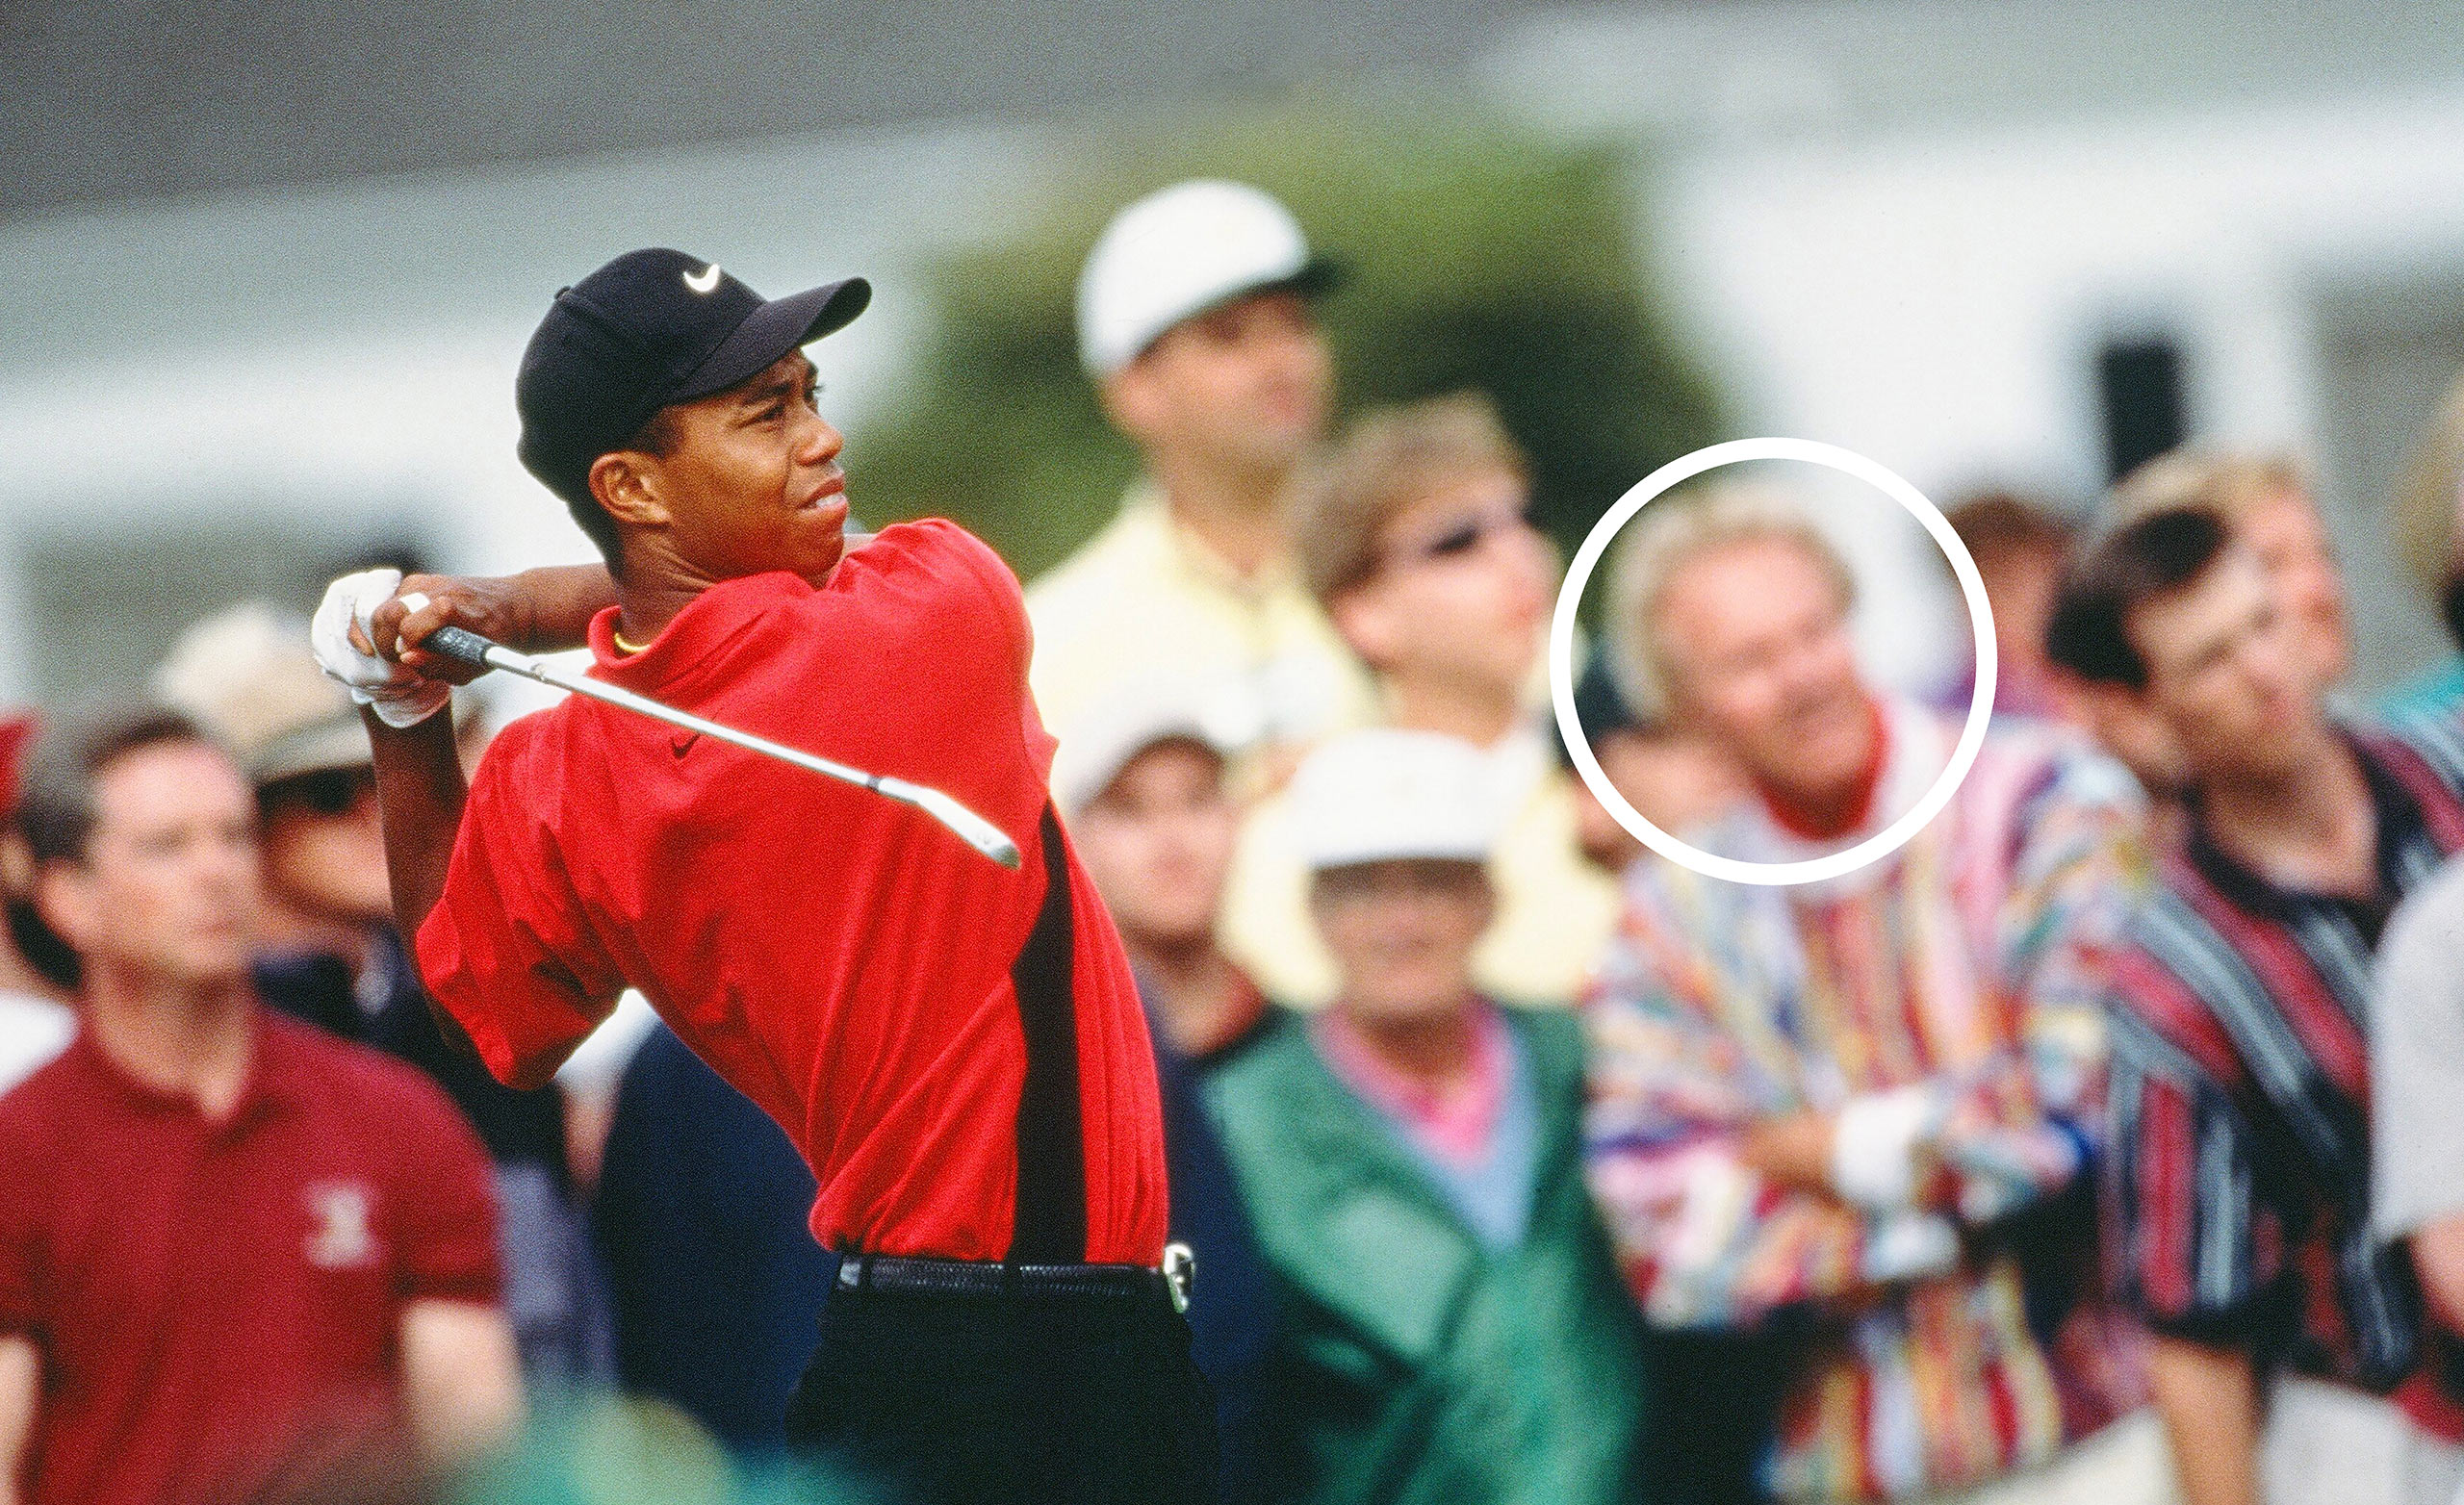 Tiger Woods Swings During The Final Round Of The 1997 Masters Tournament (Photo by Augusta National/Getty Images)